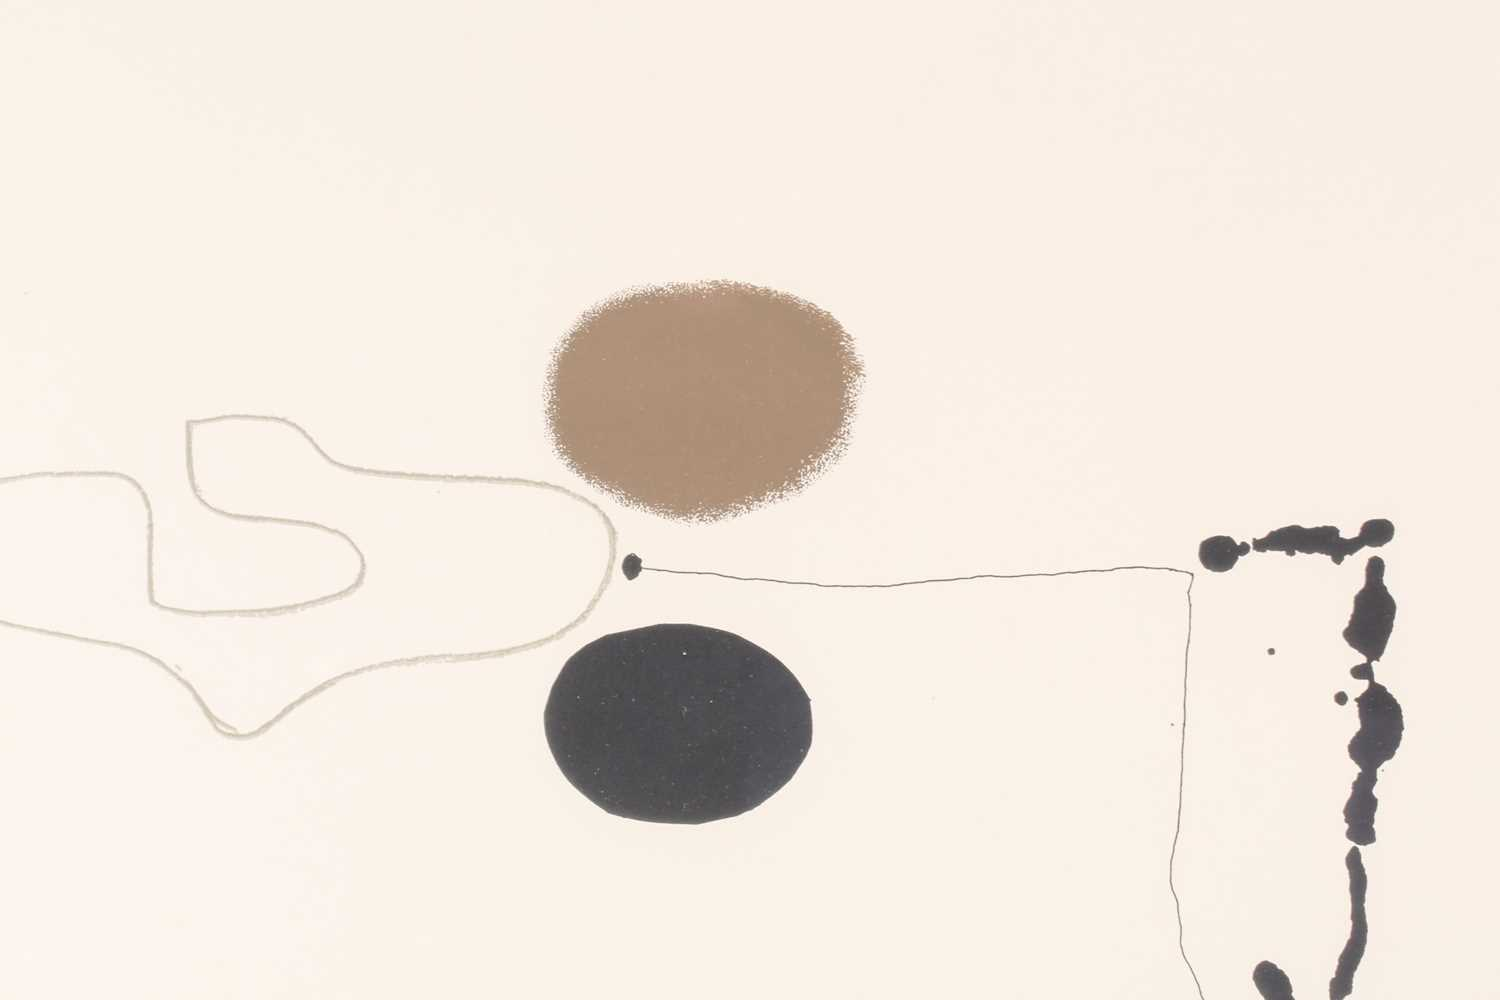 Victor Pasmore RA (1908-1998), 'Linear Development II', from 'Points of Contact', 1970', artist - Image 5 of 5